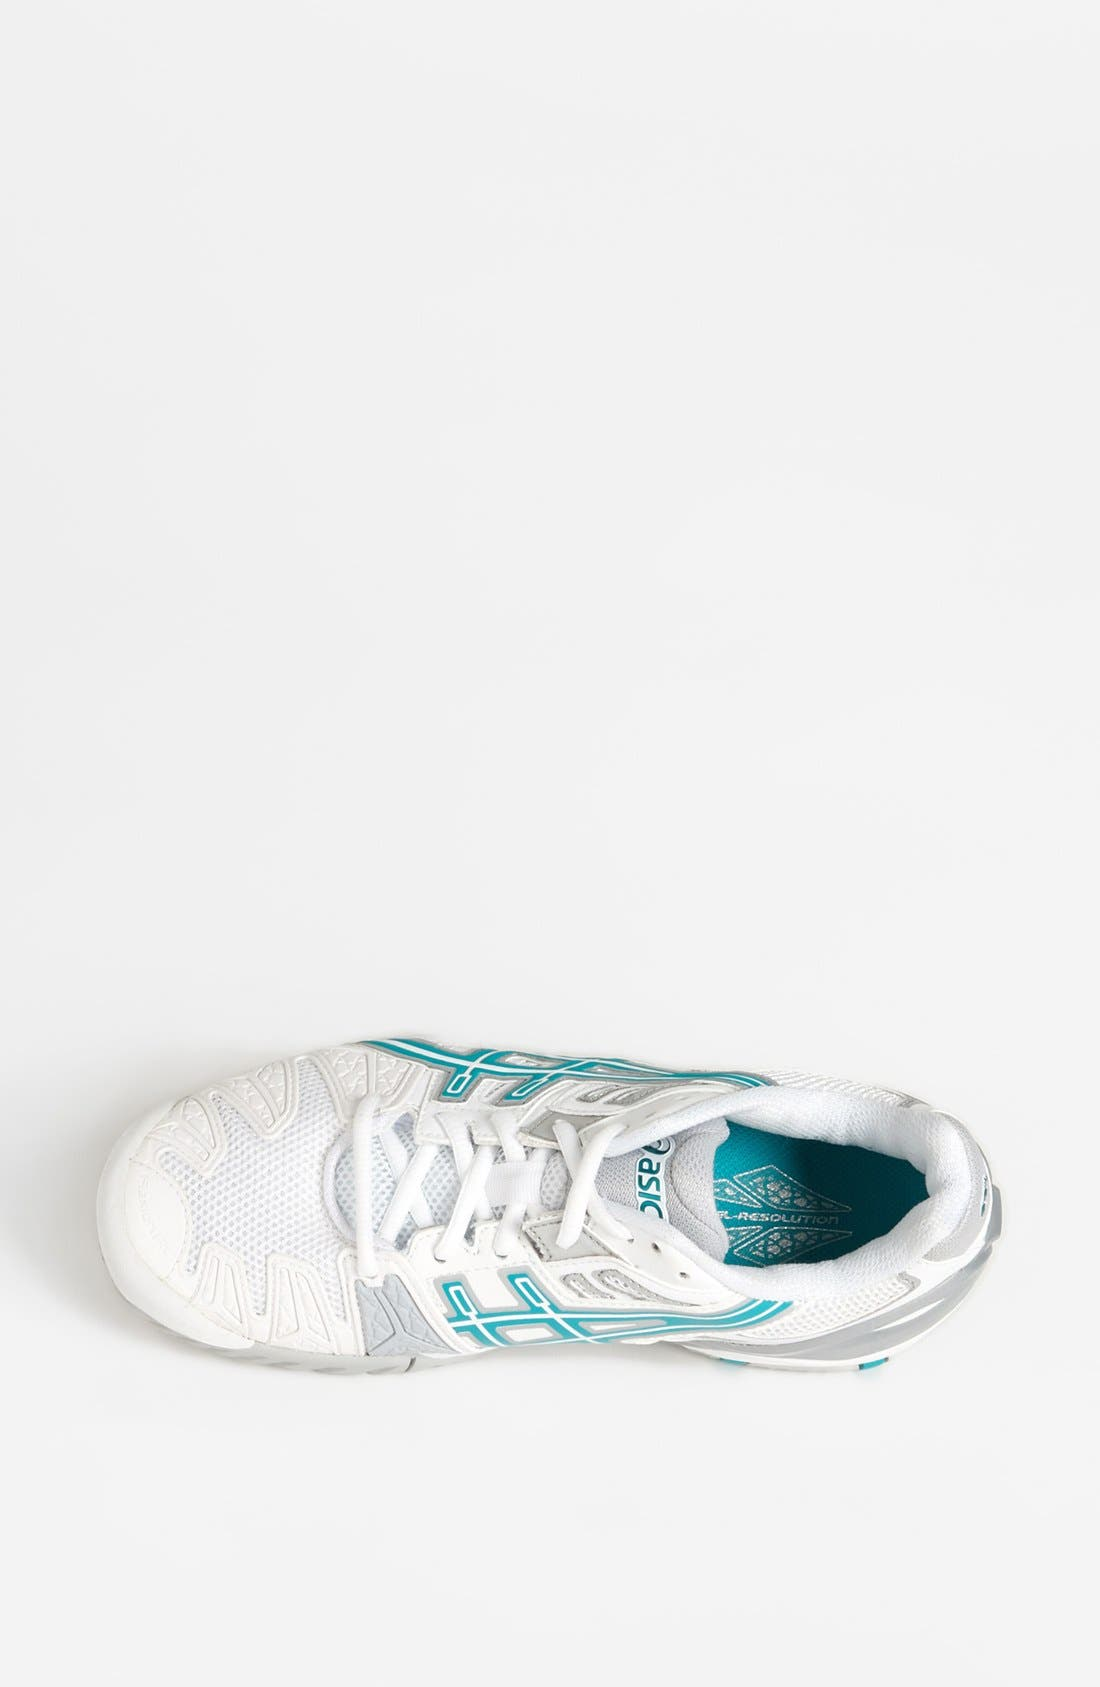 Alternate Image 3  - ASICS® 'GEL-Resolution 5' Tennis Shoe (Women)(Regular Retail Price: $139.95)